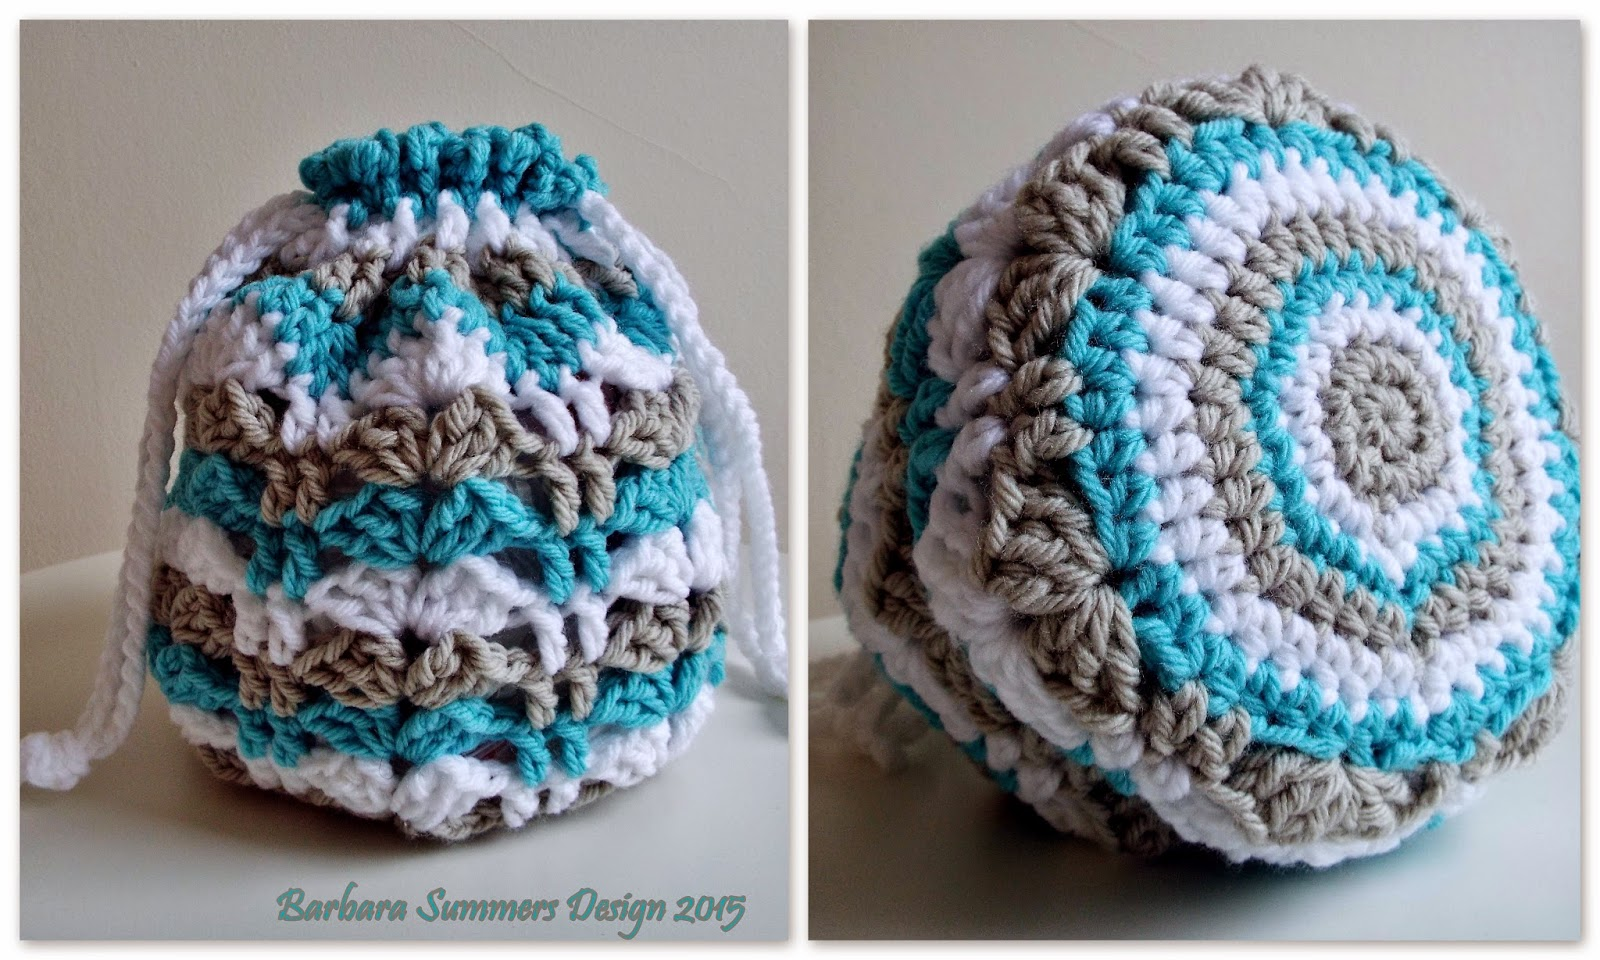 Simple Crochet Bag Pattern : crochet bag, circular bag, fans, posts, how to crochet fans, how to ...